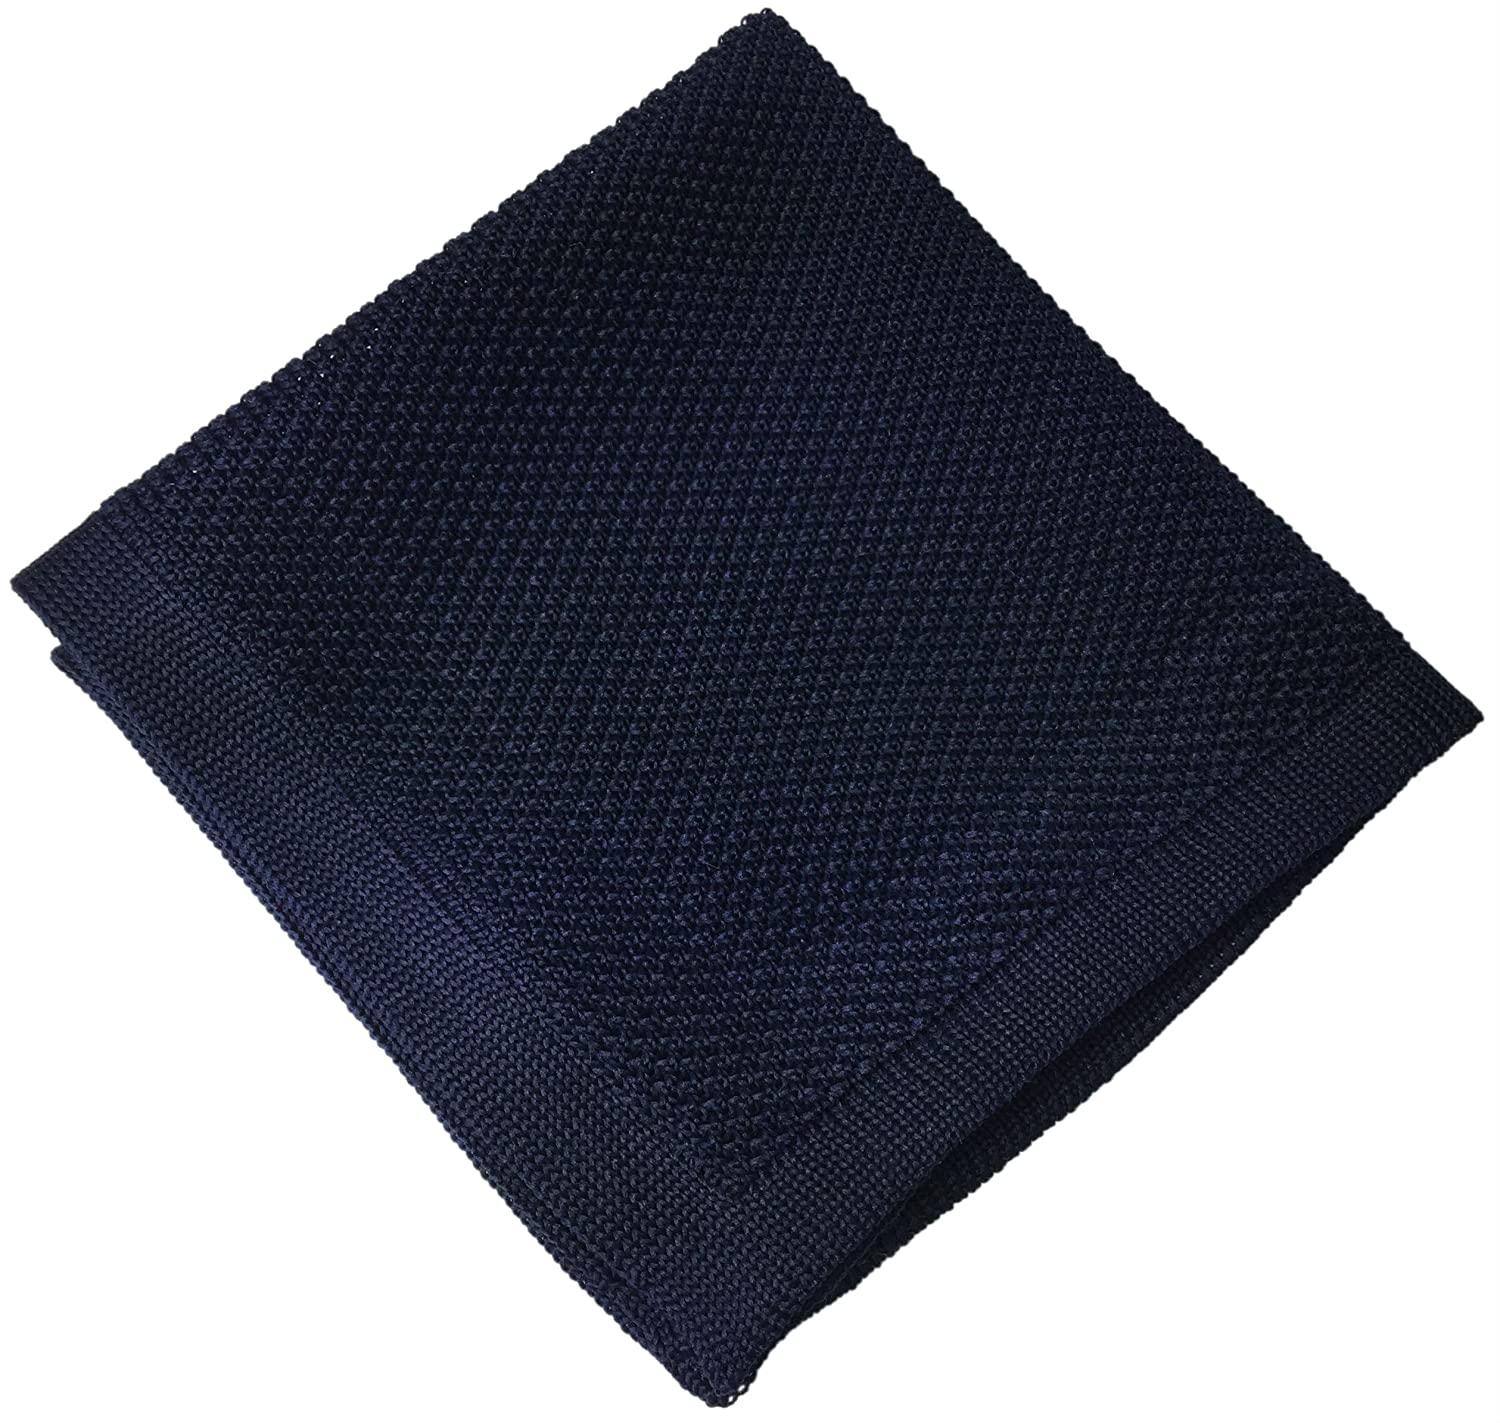 Beautiful High Quality Knitted Pocket Square Handkerchief Hanky